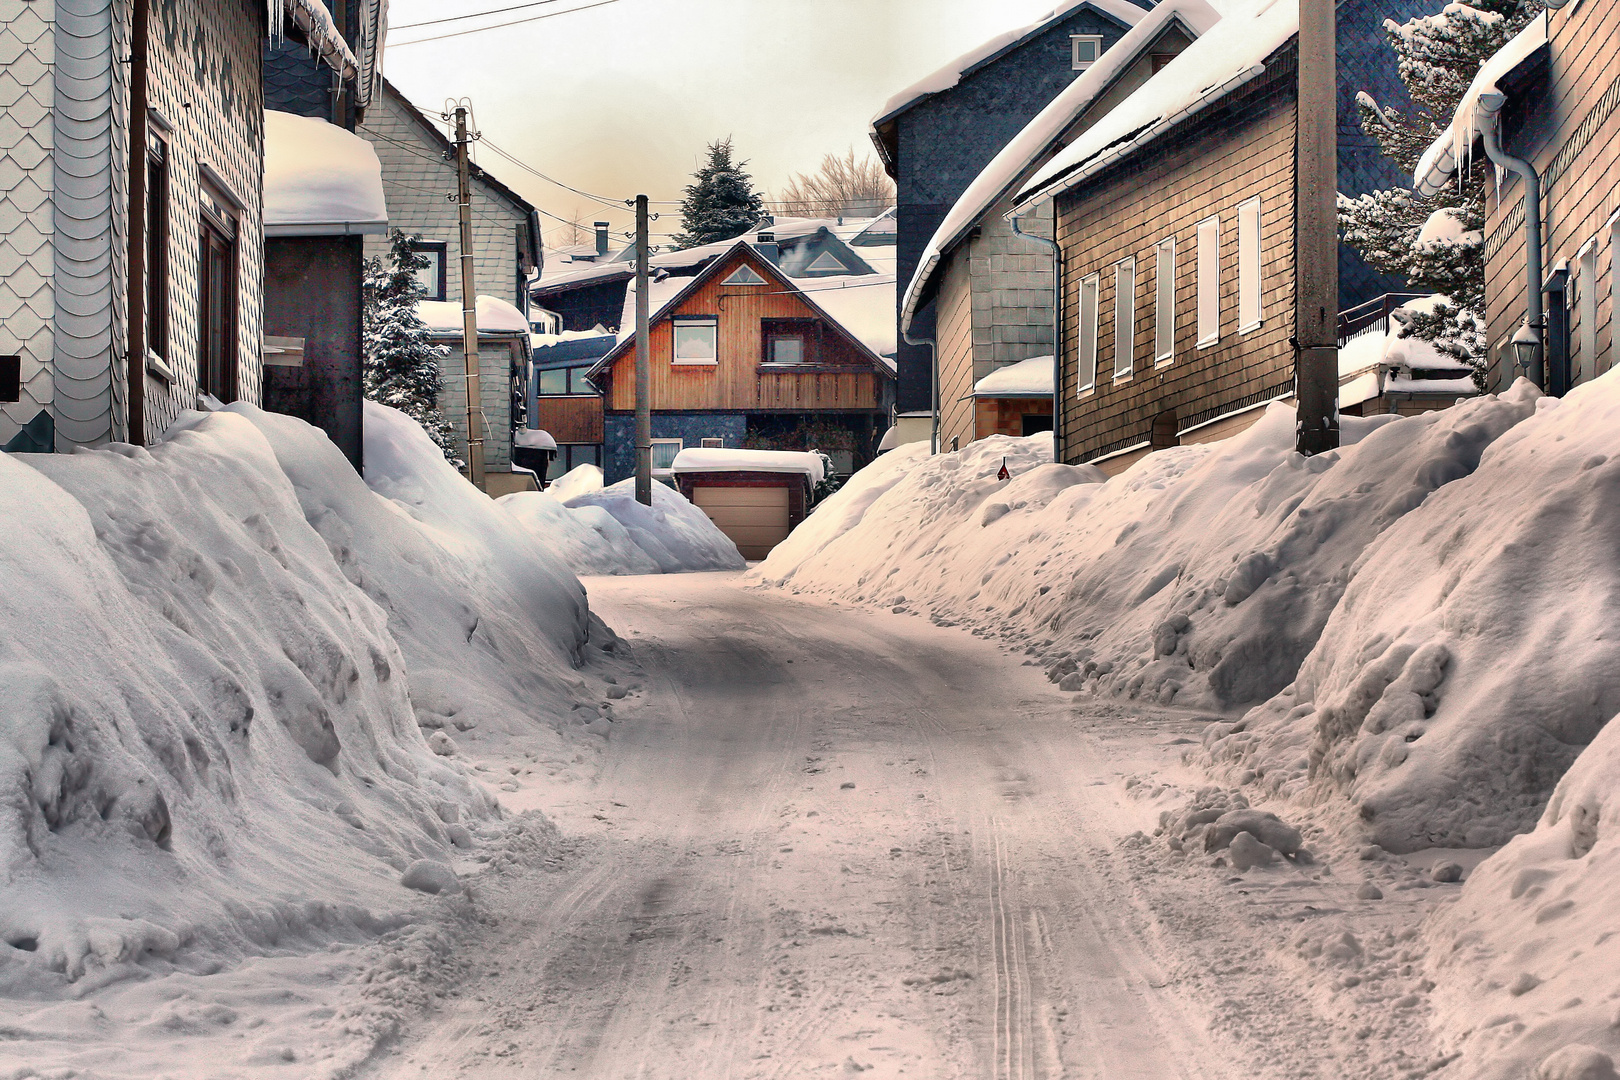 Winter in Hasenthal